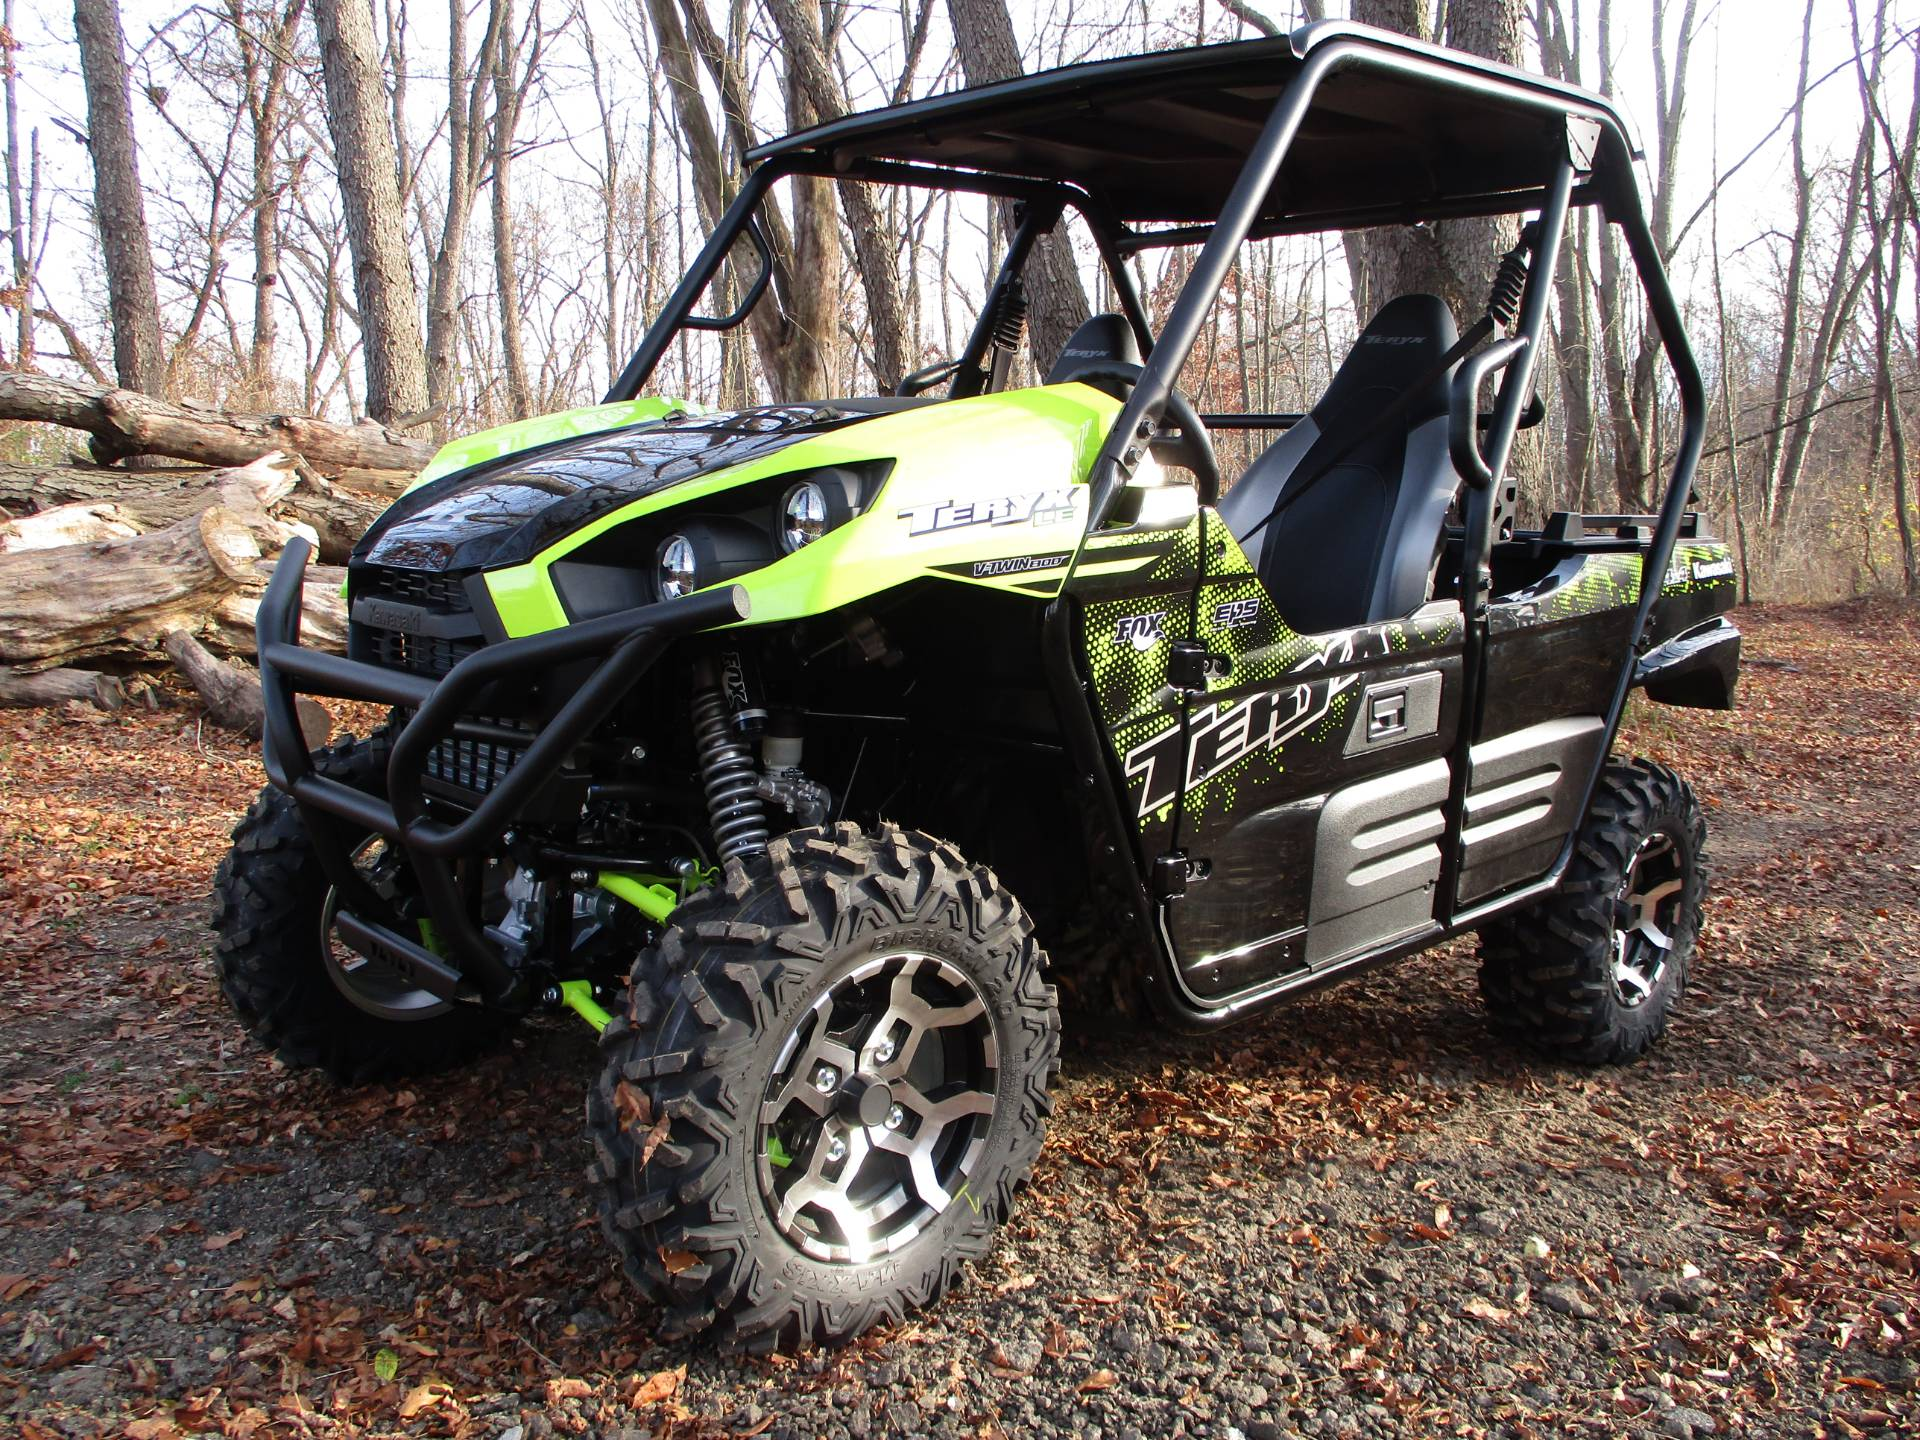 2021 Kawasaki Teryx LE in Howell, Michigan - Photo 2